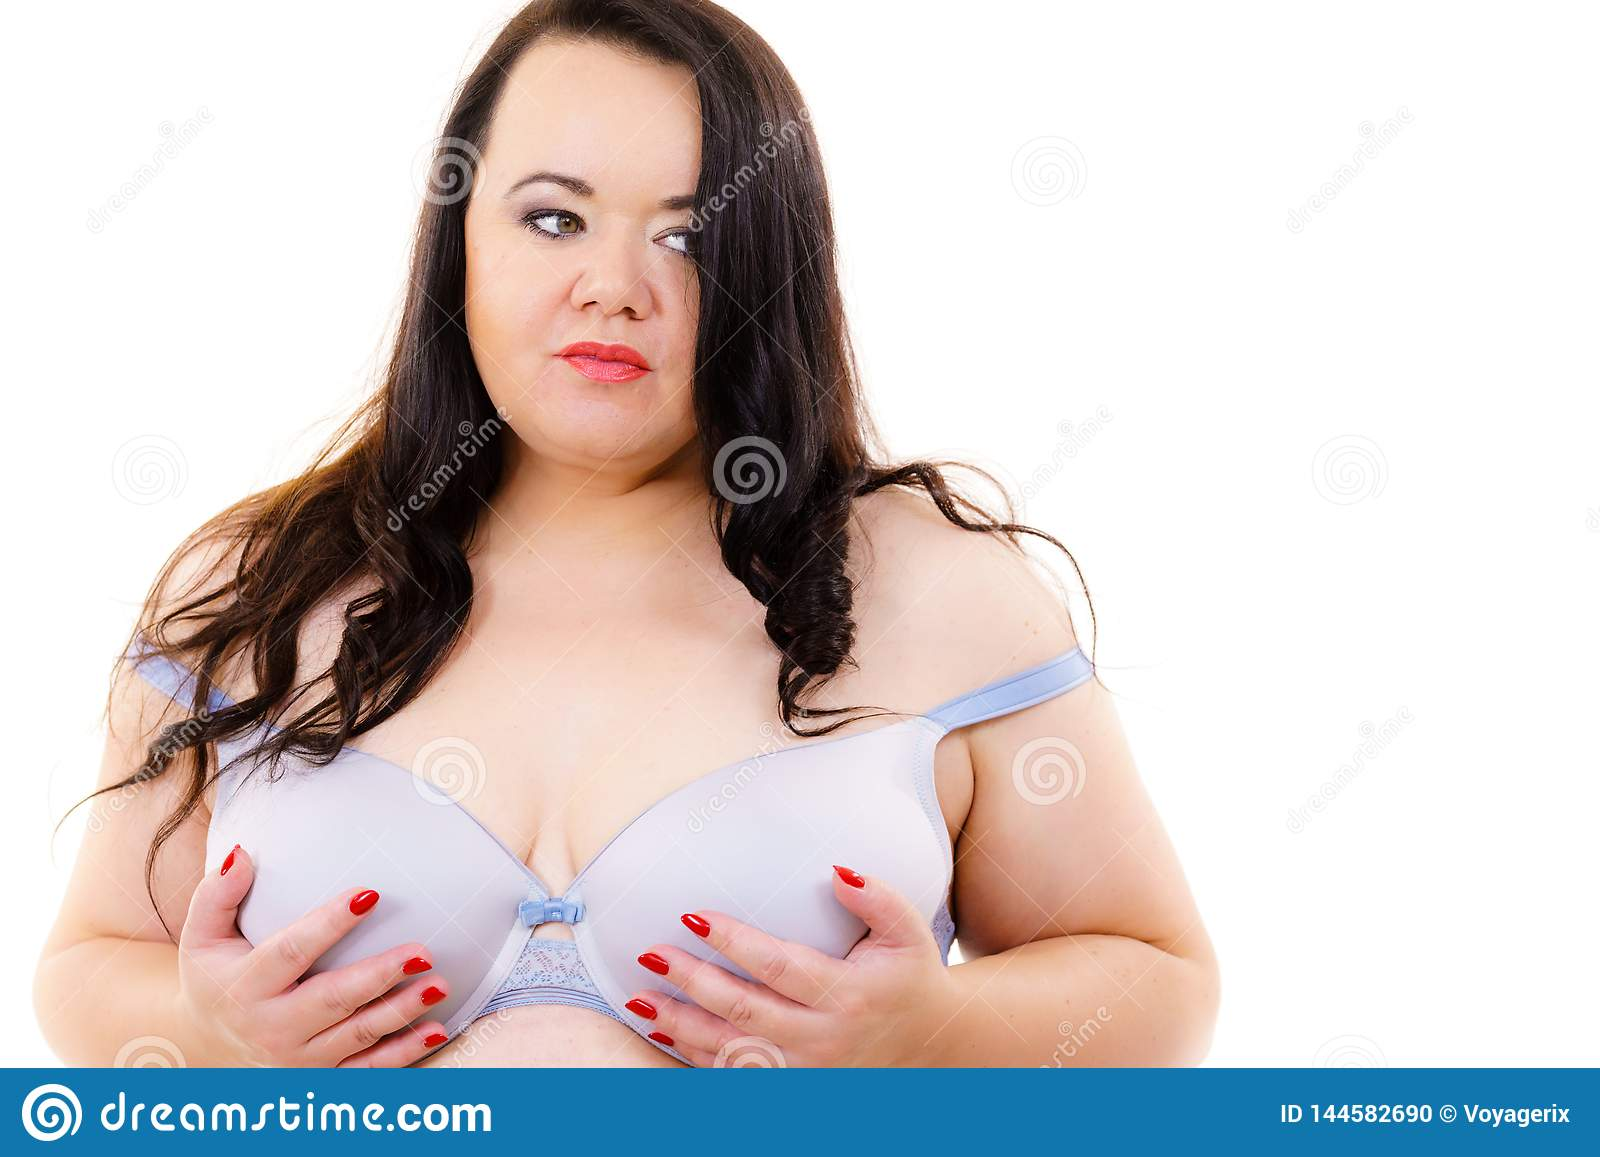 Mature chubby women in lingerie Big Woman Wearing Bra Stock Photo Image Of Touch Chubby 144582690